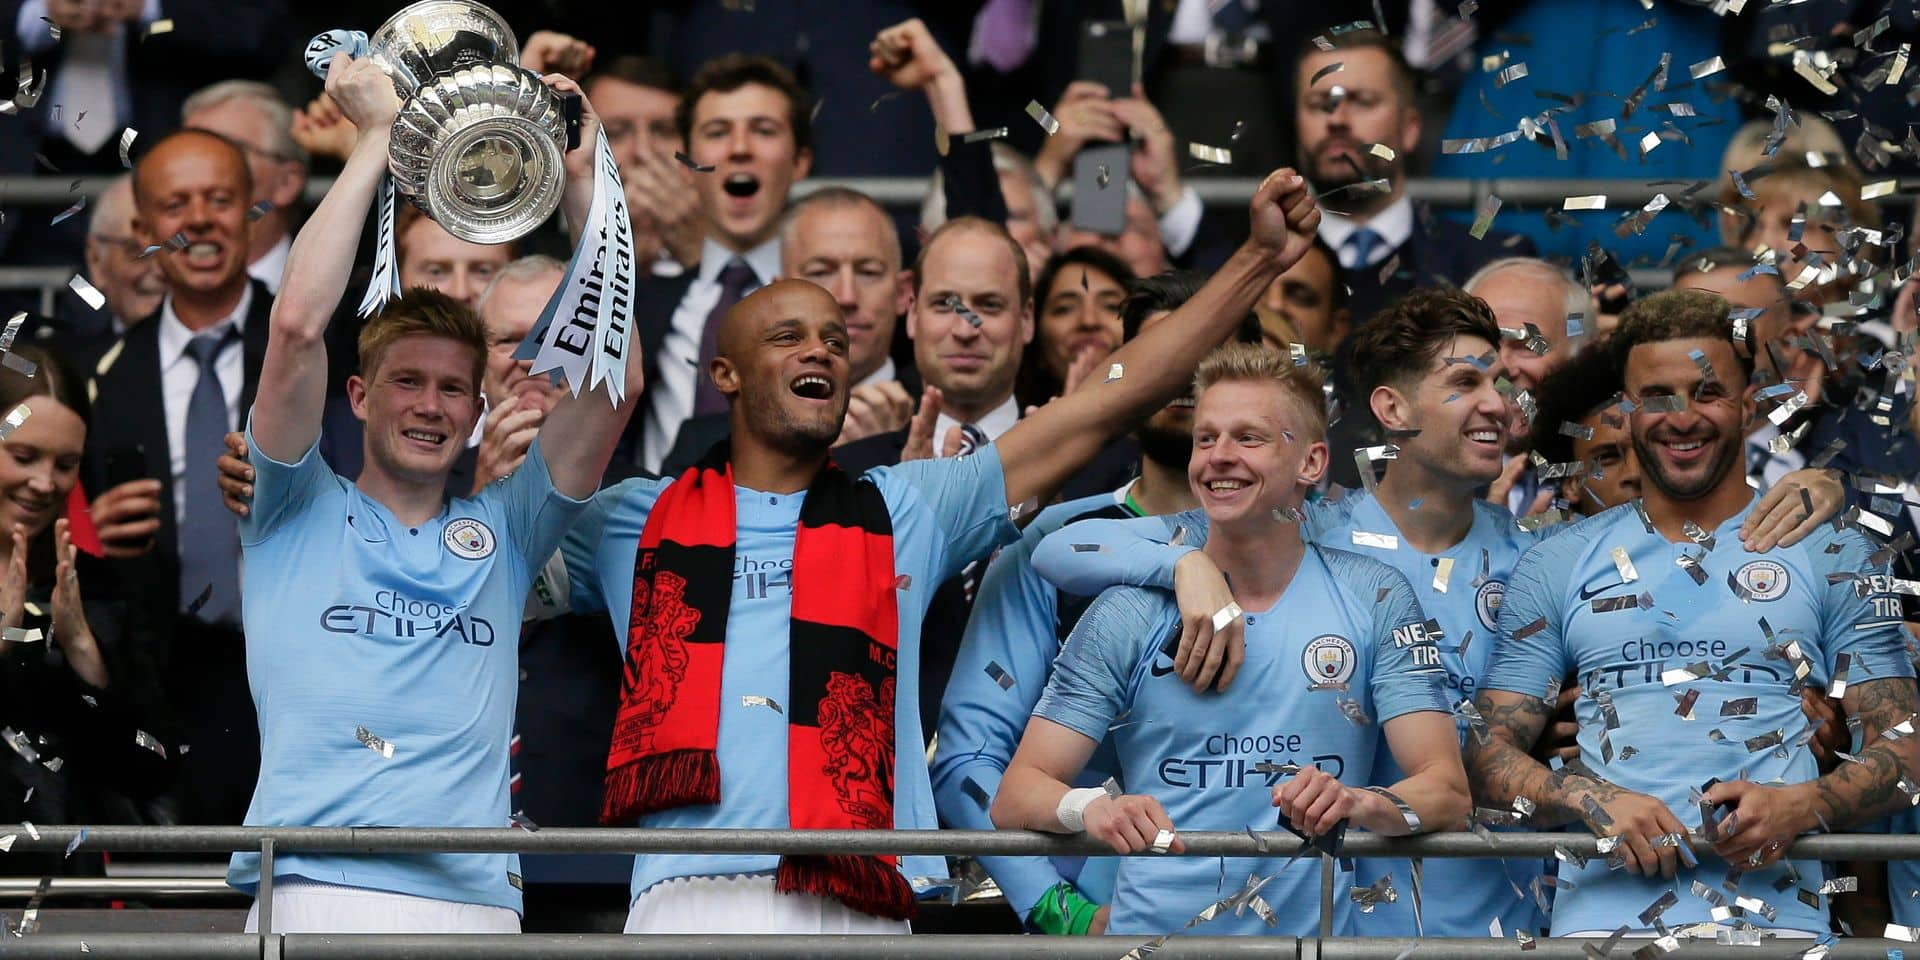 Manchester City's Kevin De Bruyne lifts the trophy after winning the English FA Cup Final soccer match between Manchester City and Watford at Wembley stadium in London, Saturday, May 18, 2019. Manchester City won 6-0. (AP Photo/Tim Ireland)